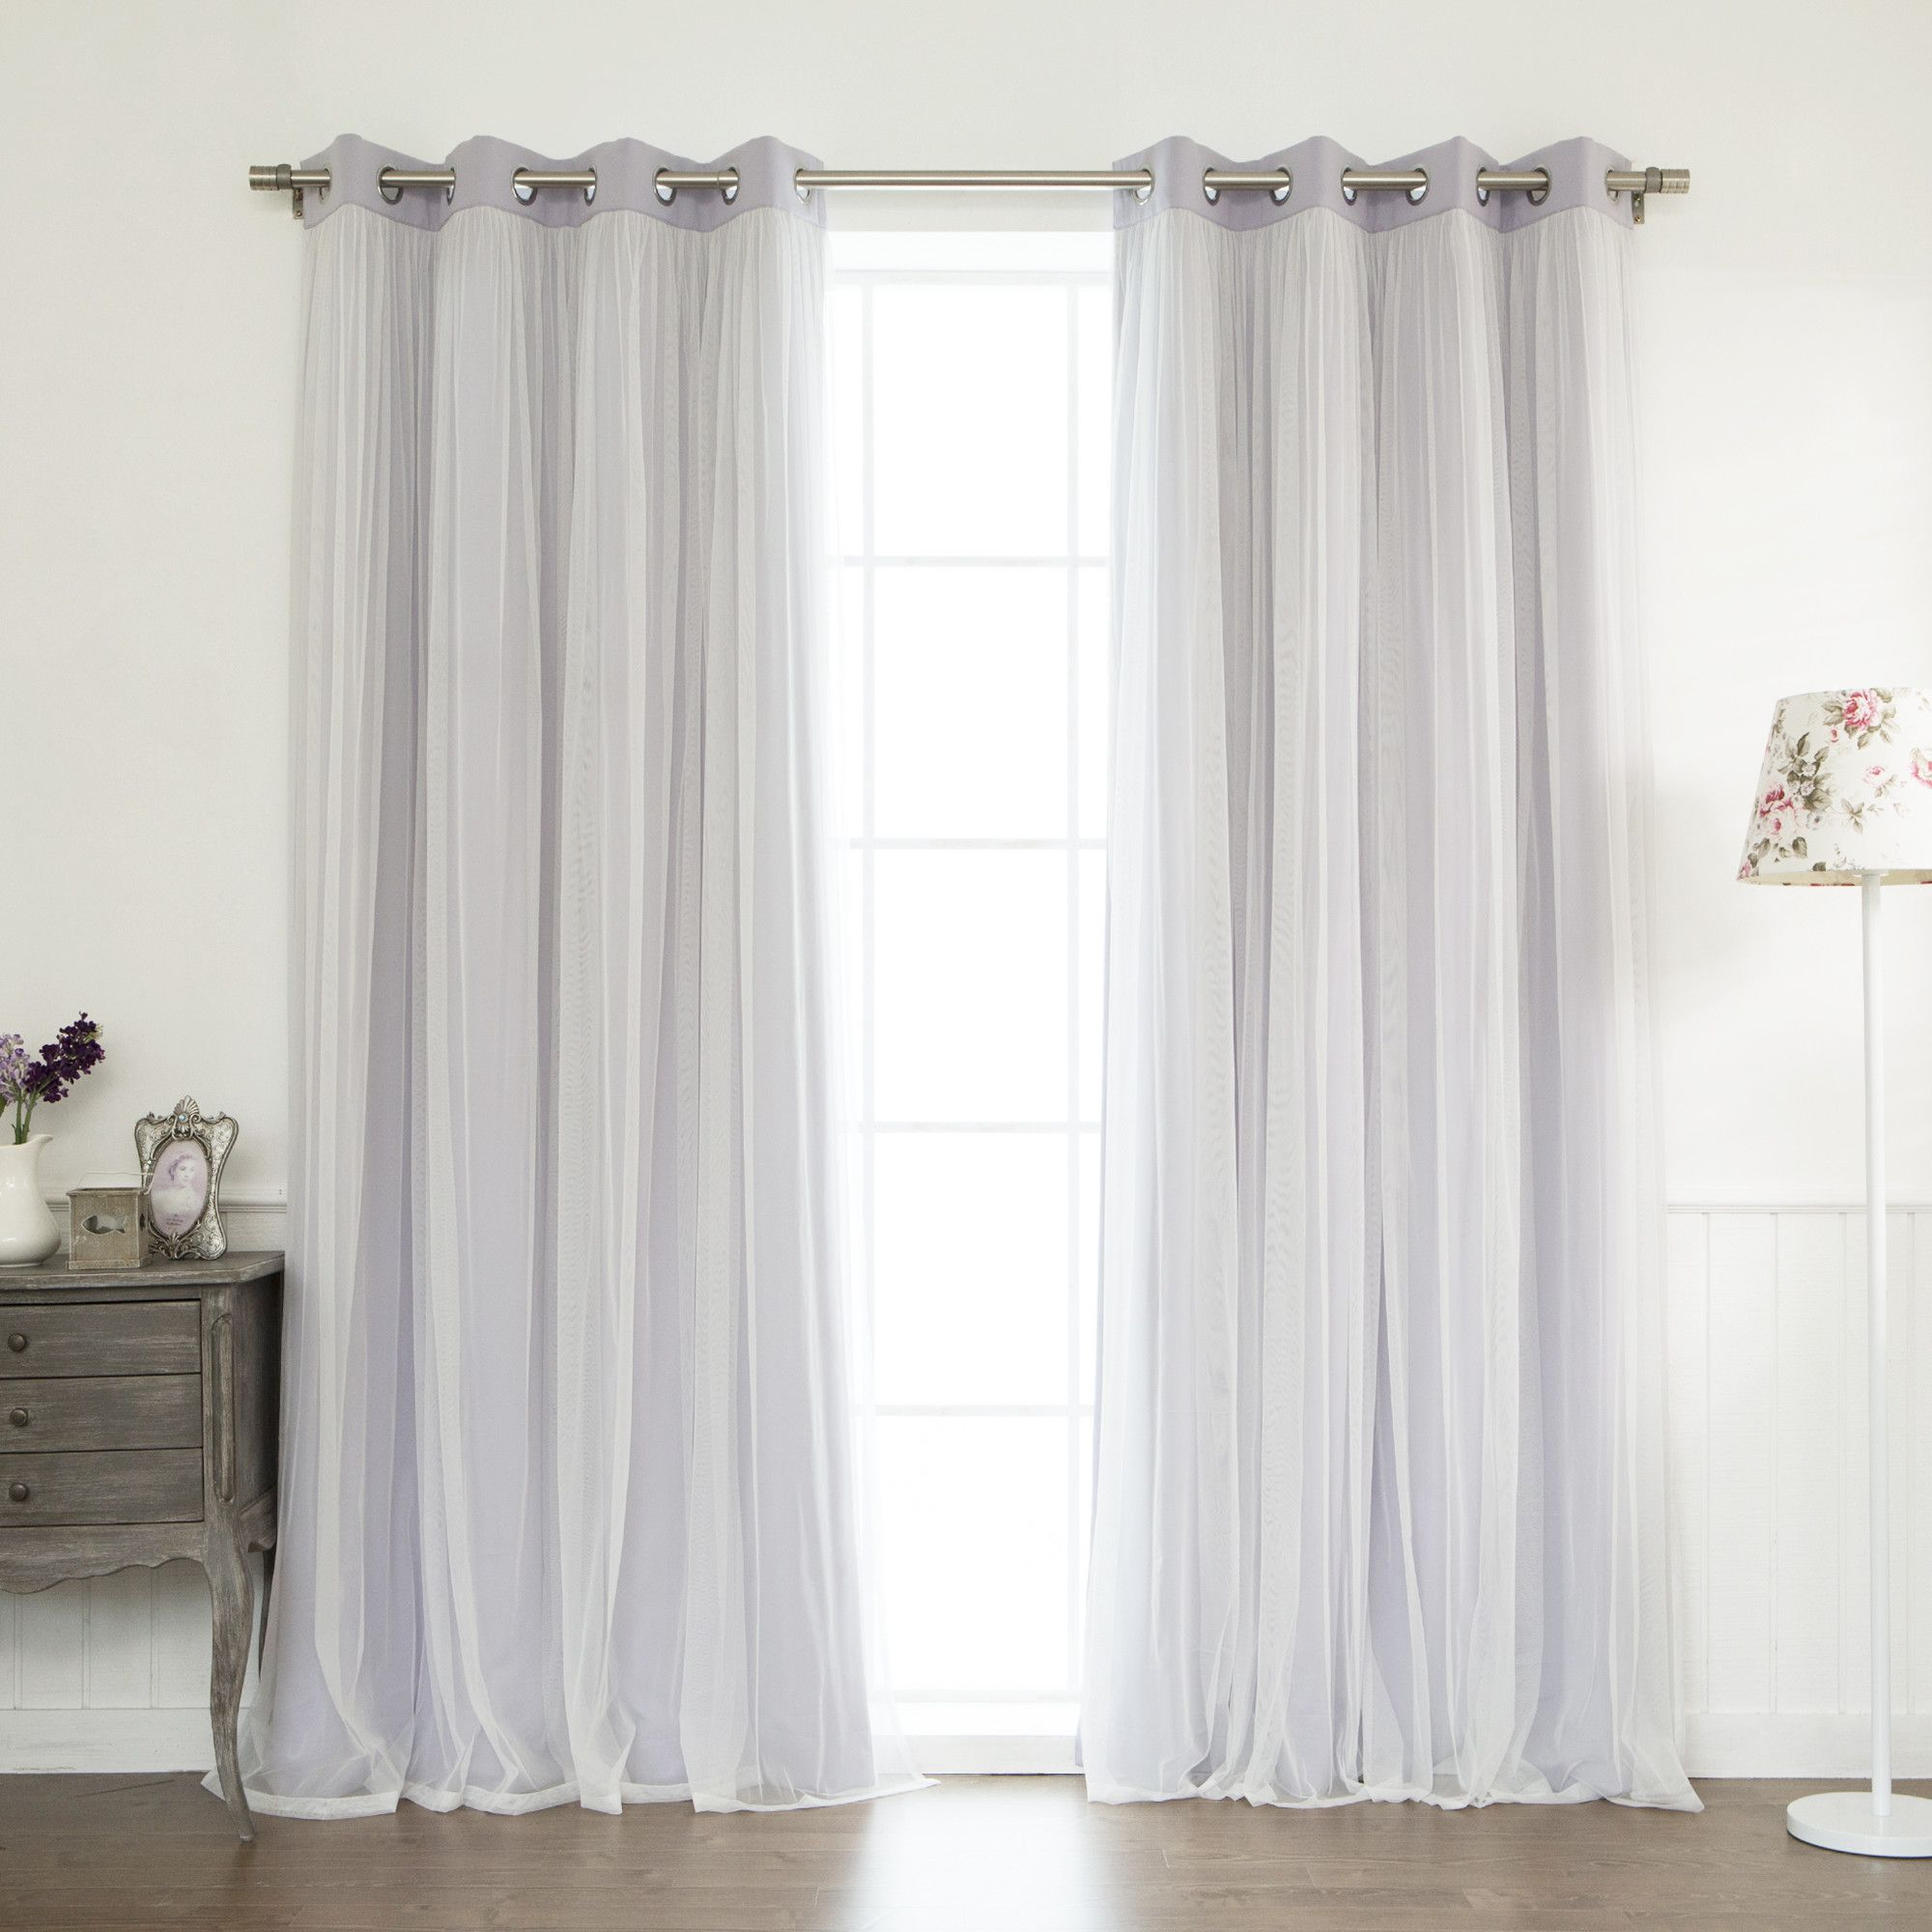 Anabelle Thermal Blackout Energy Efficient Grommet Curtain Panel